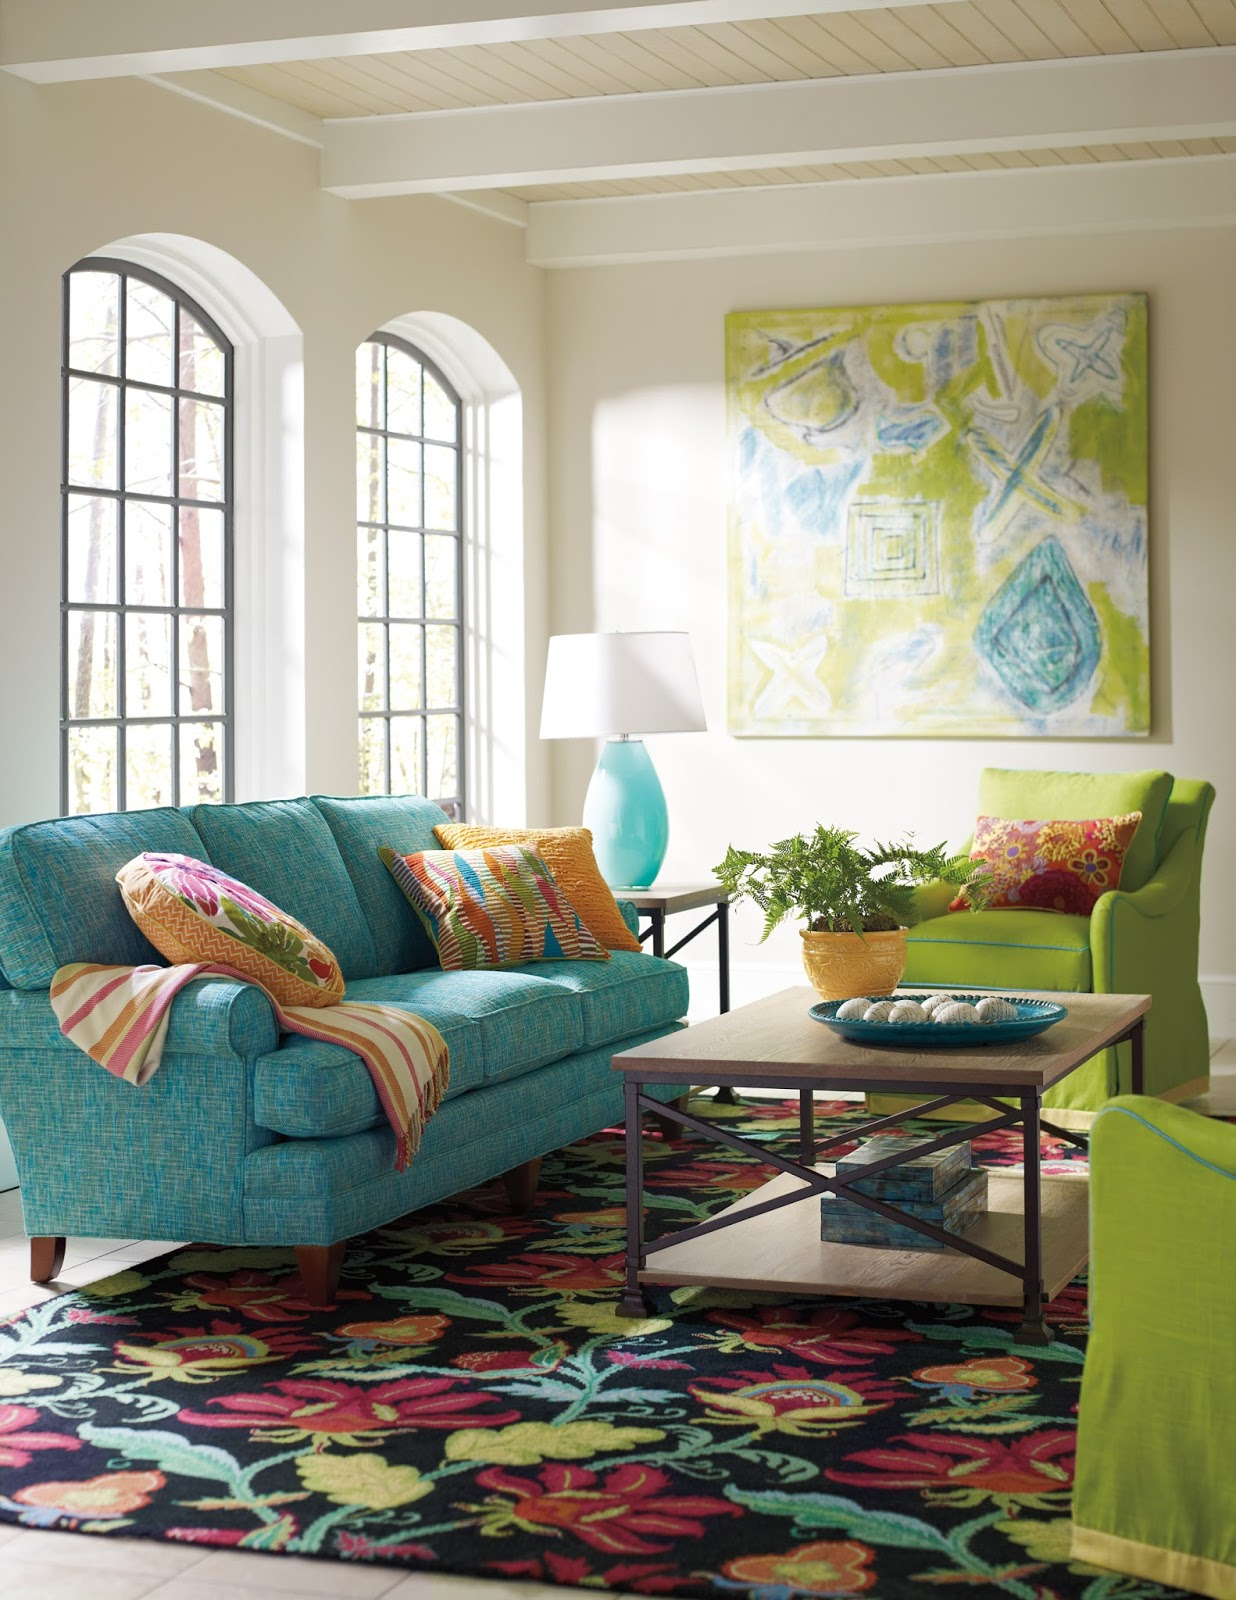 green-and-teal-rugs-for-living-room